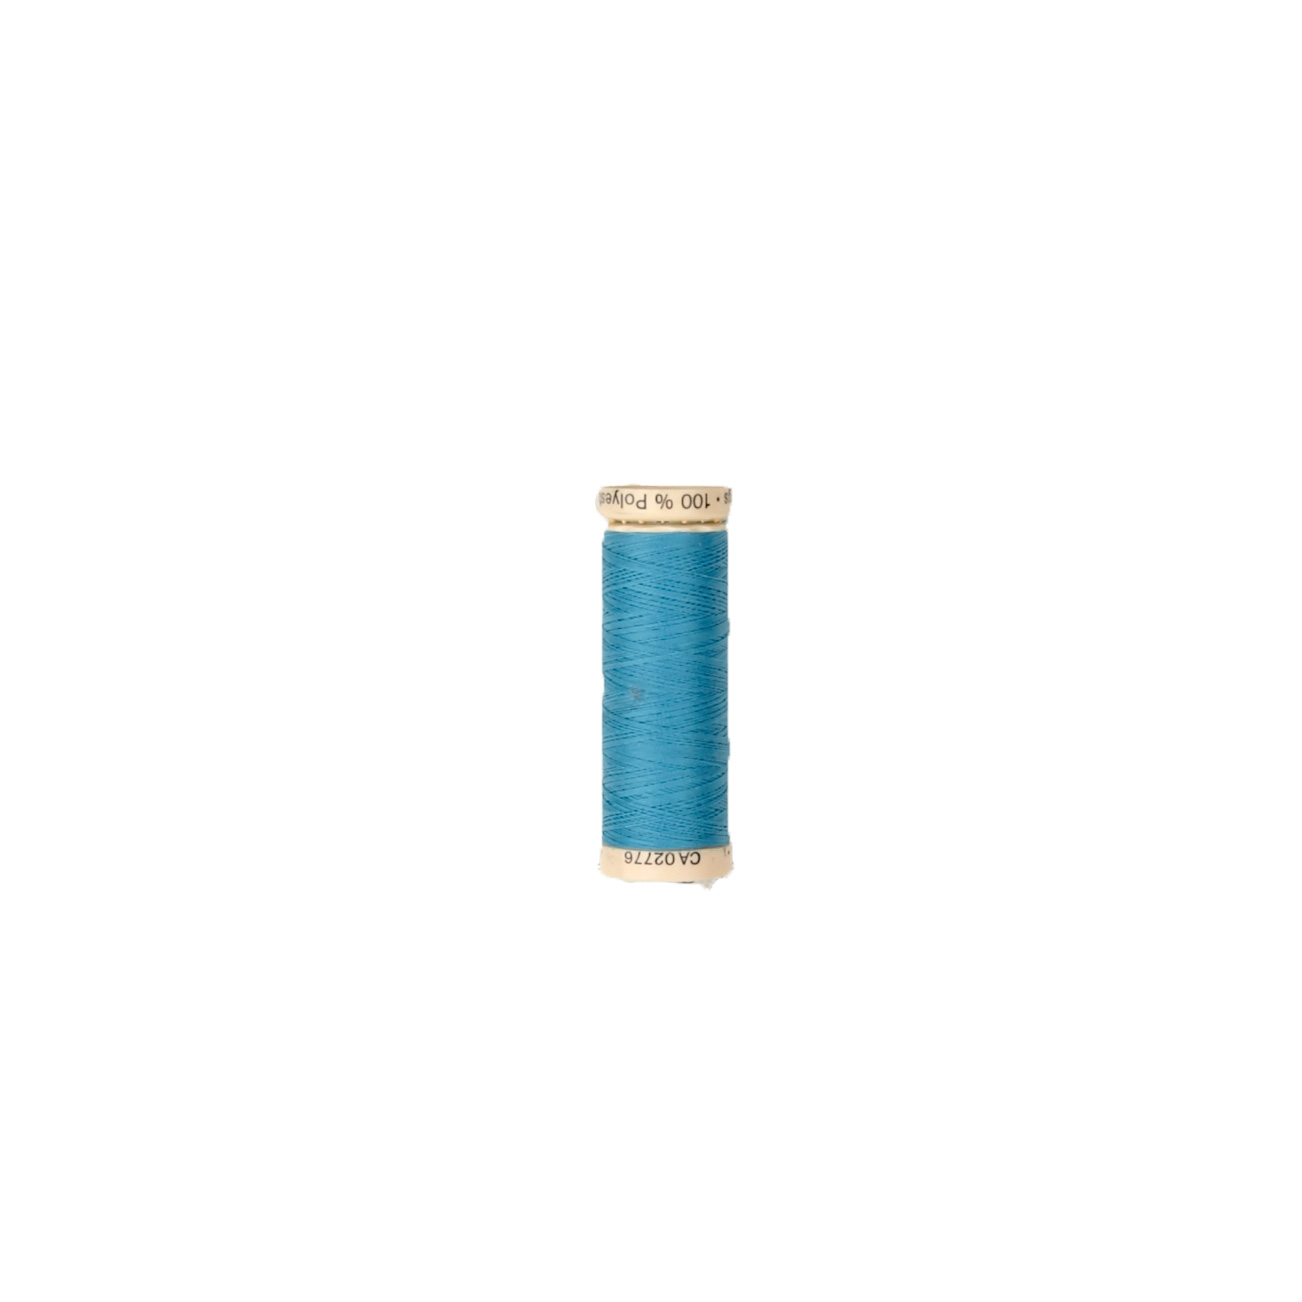 Gutermann Sew-All Thread 110 Yard (619) Parakeet Fabric